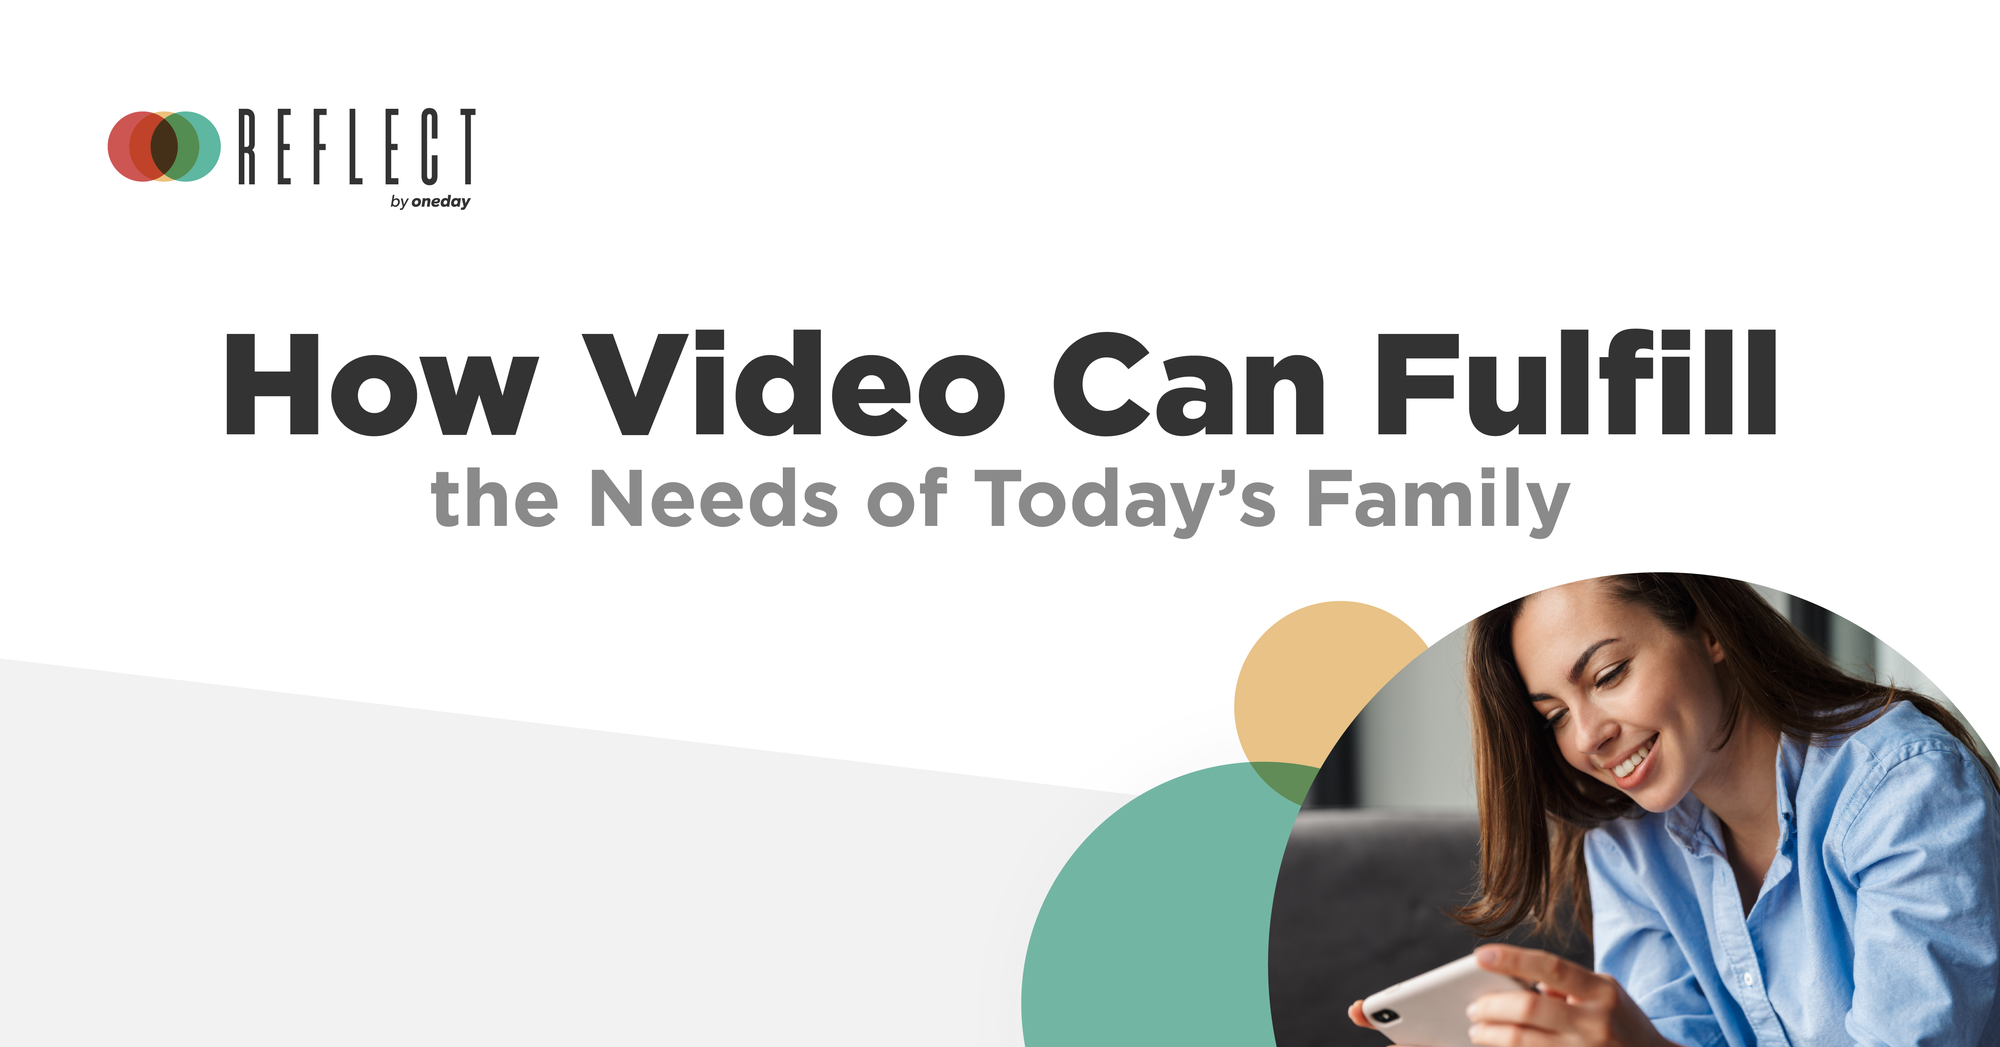 How Video Can Fulfill the Needs of Today's Family